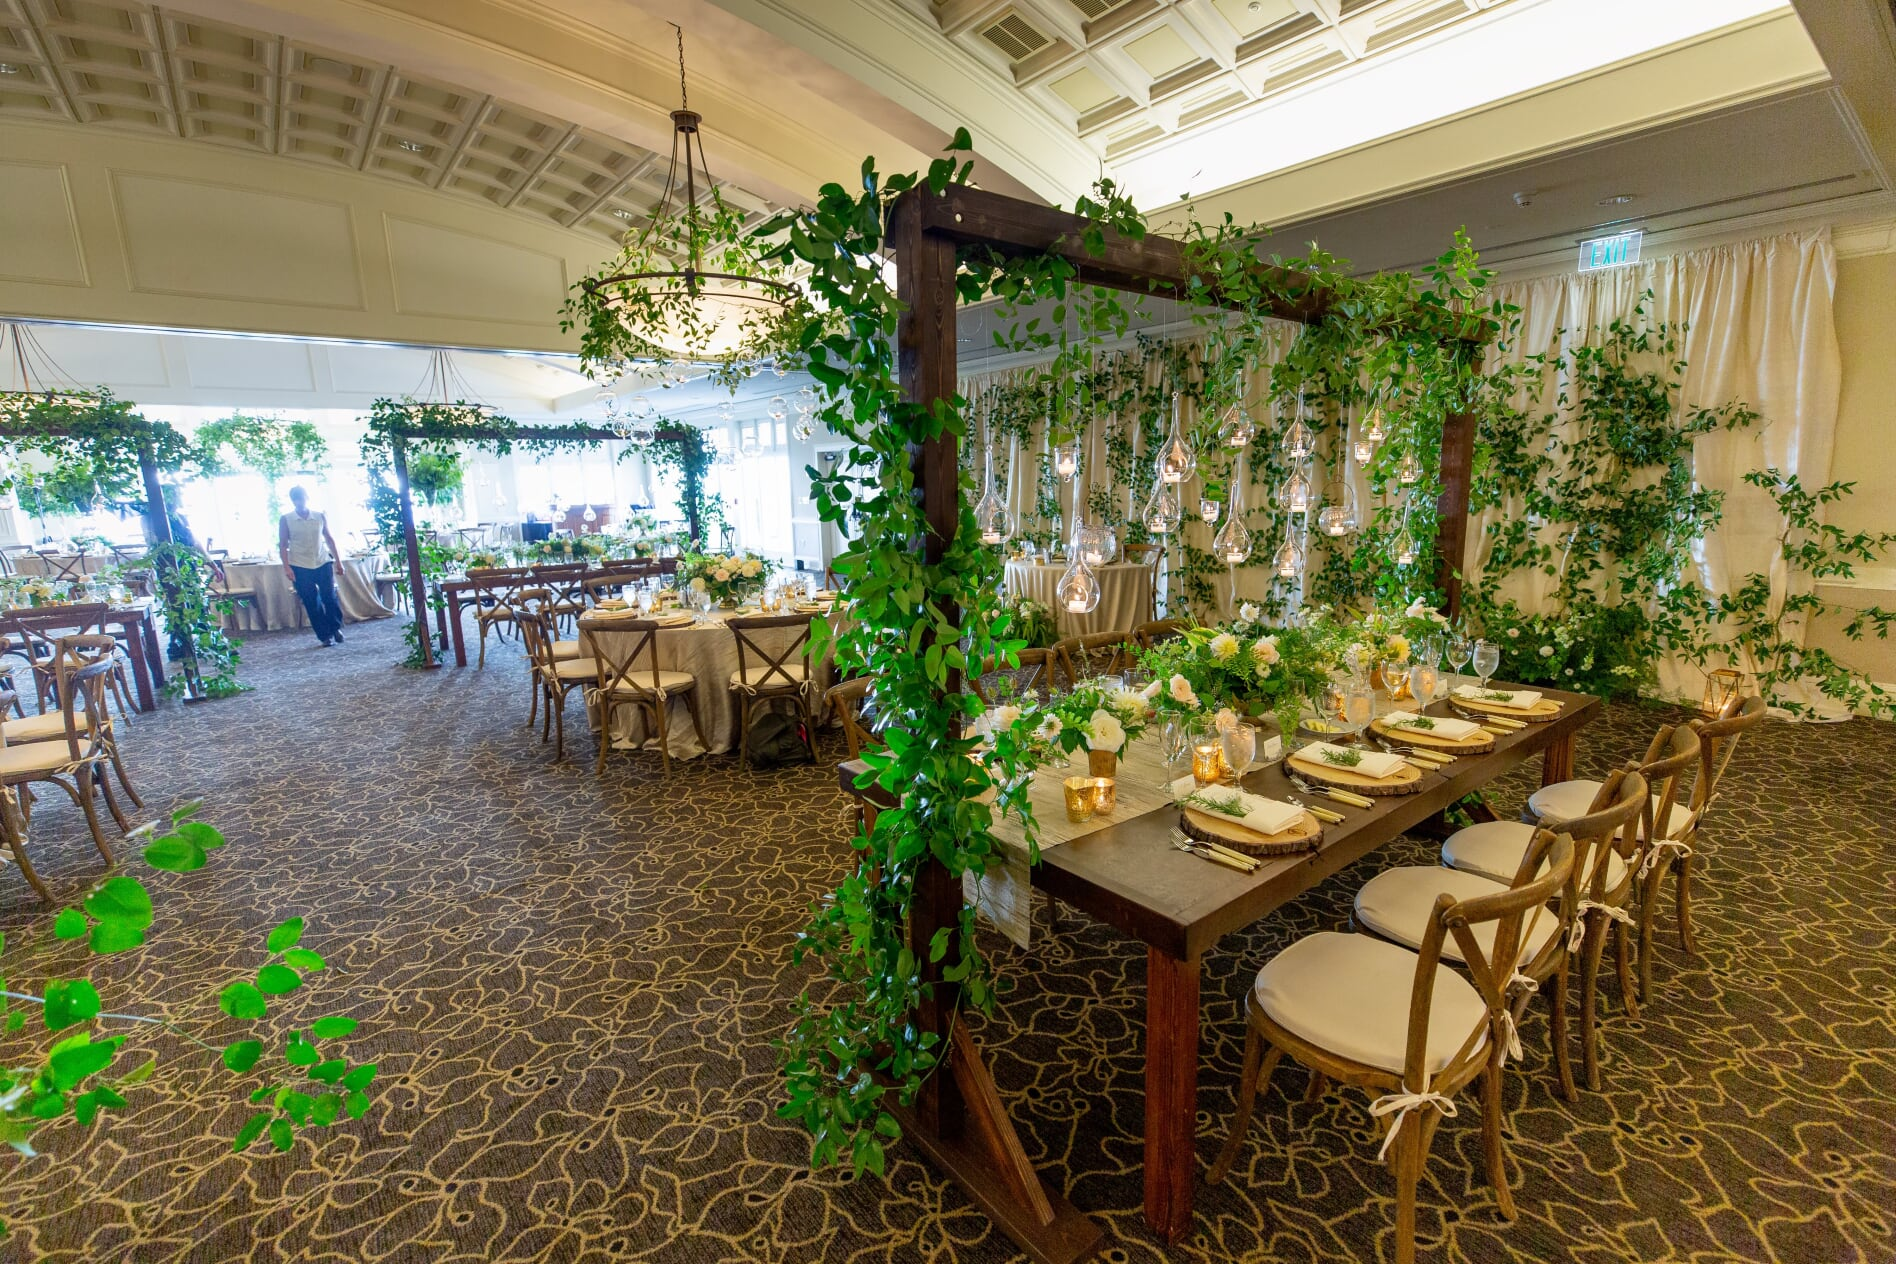 Midsummer Night's Dream Wedding Wooden trellis over table hung with vines and hanging candles in ballroom